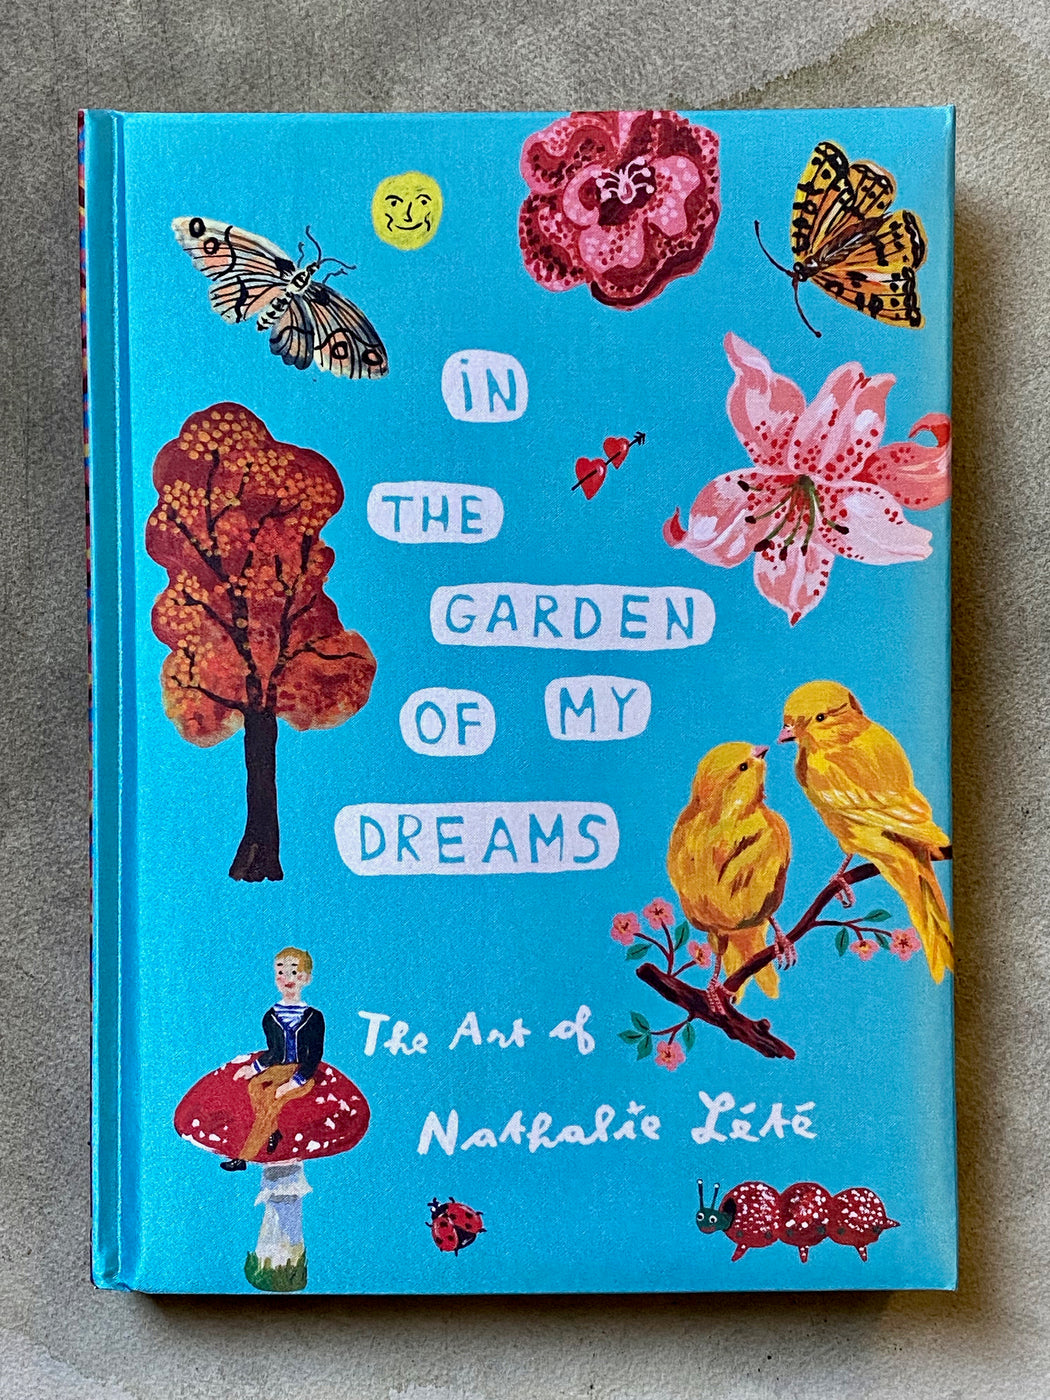 """In The Garden of My Dreams"" by Nathalie Lete"